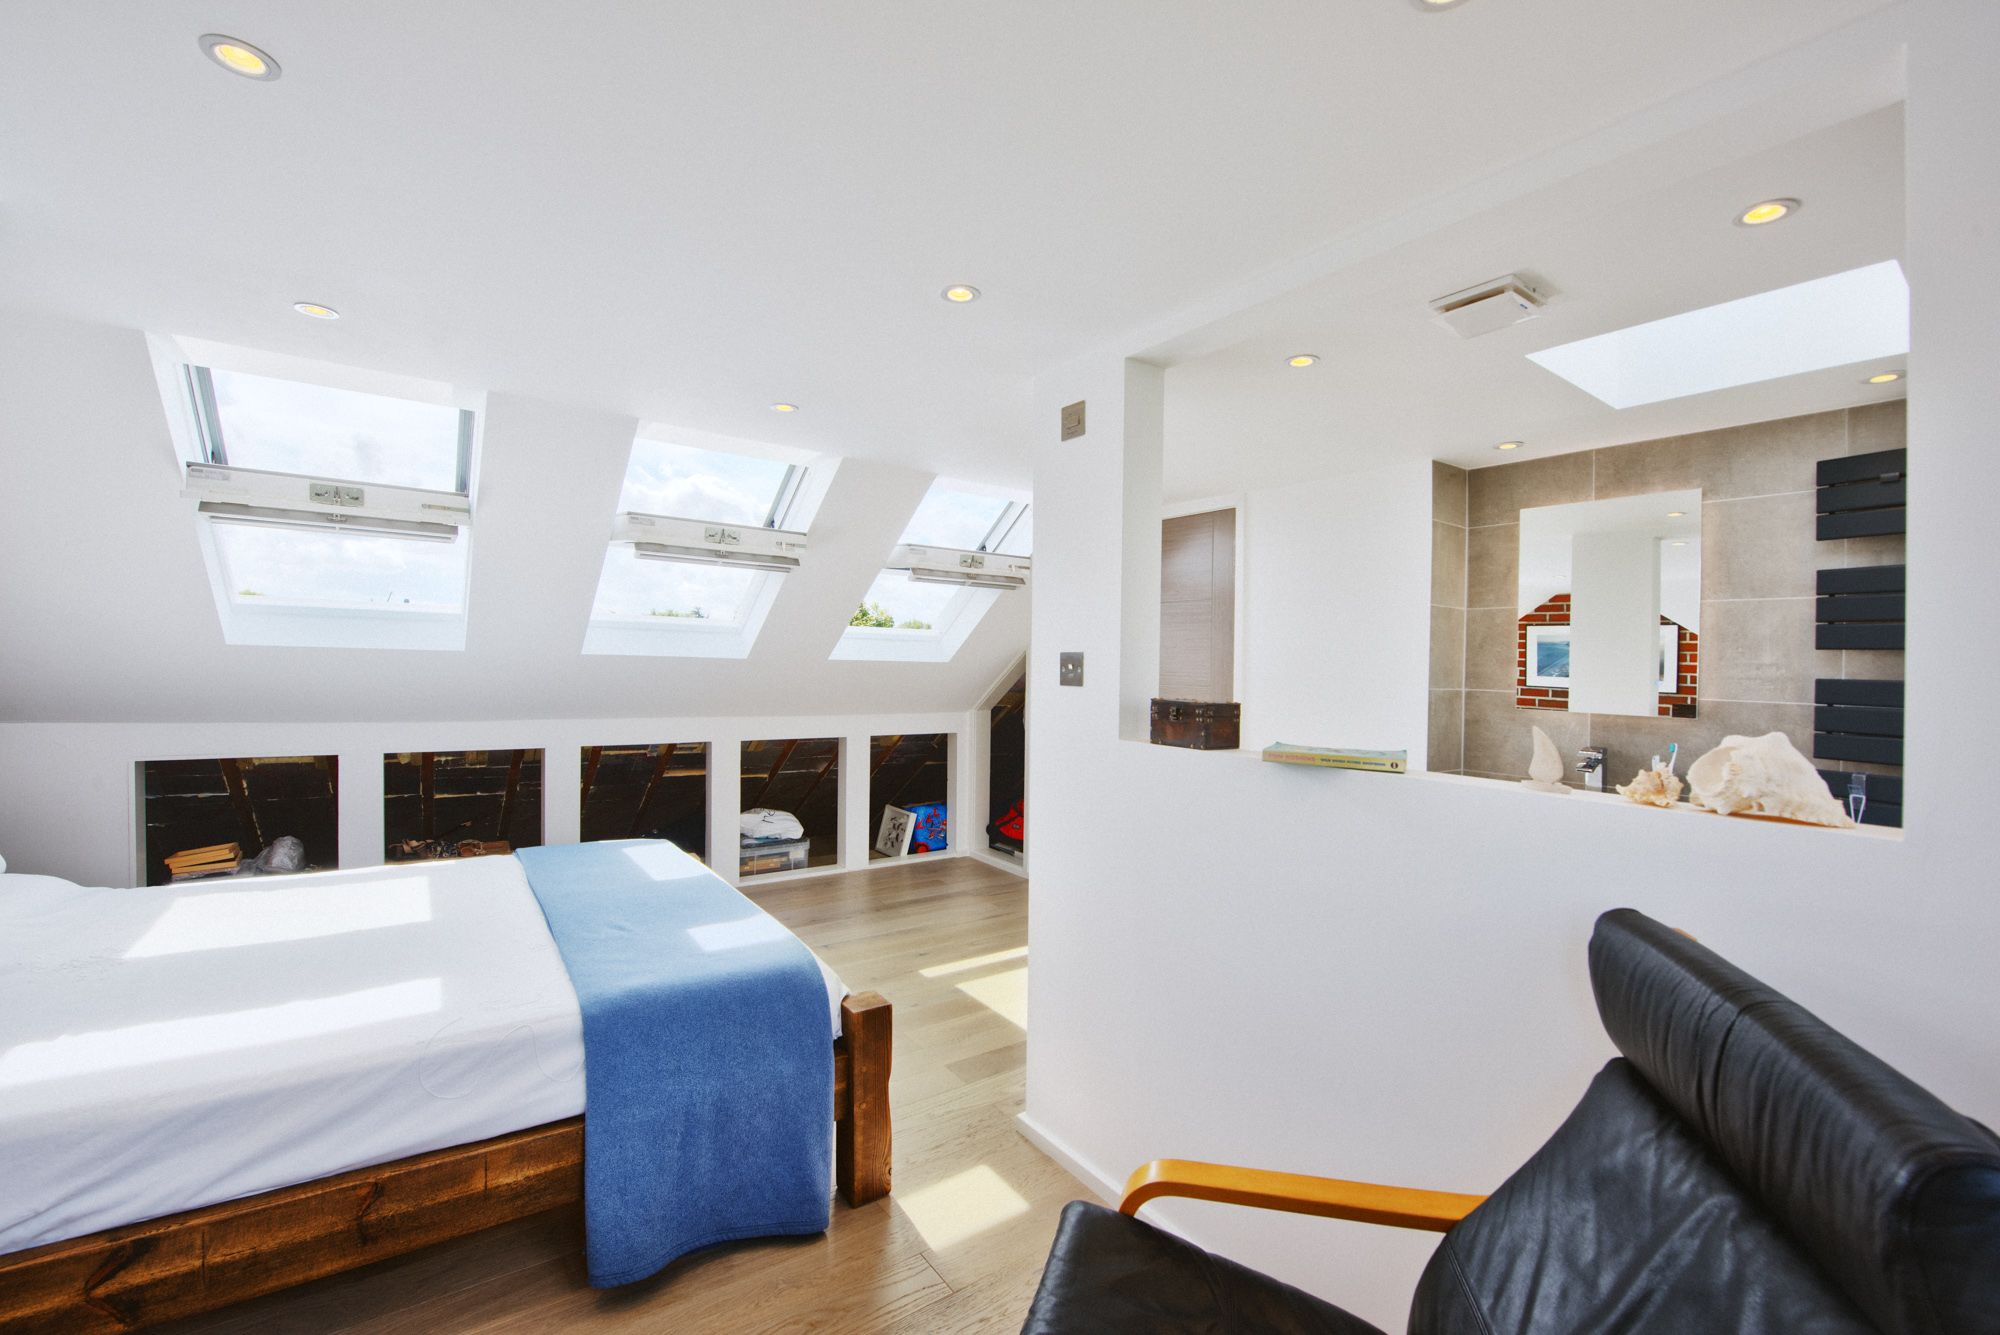 Loft bedroom ideas with ensuite  When Geoffrey and Santa bought their first home together near Kew